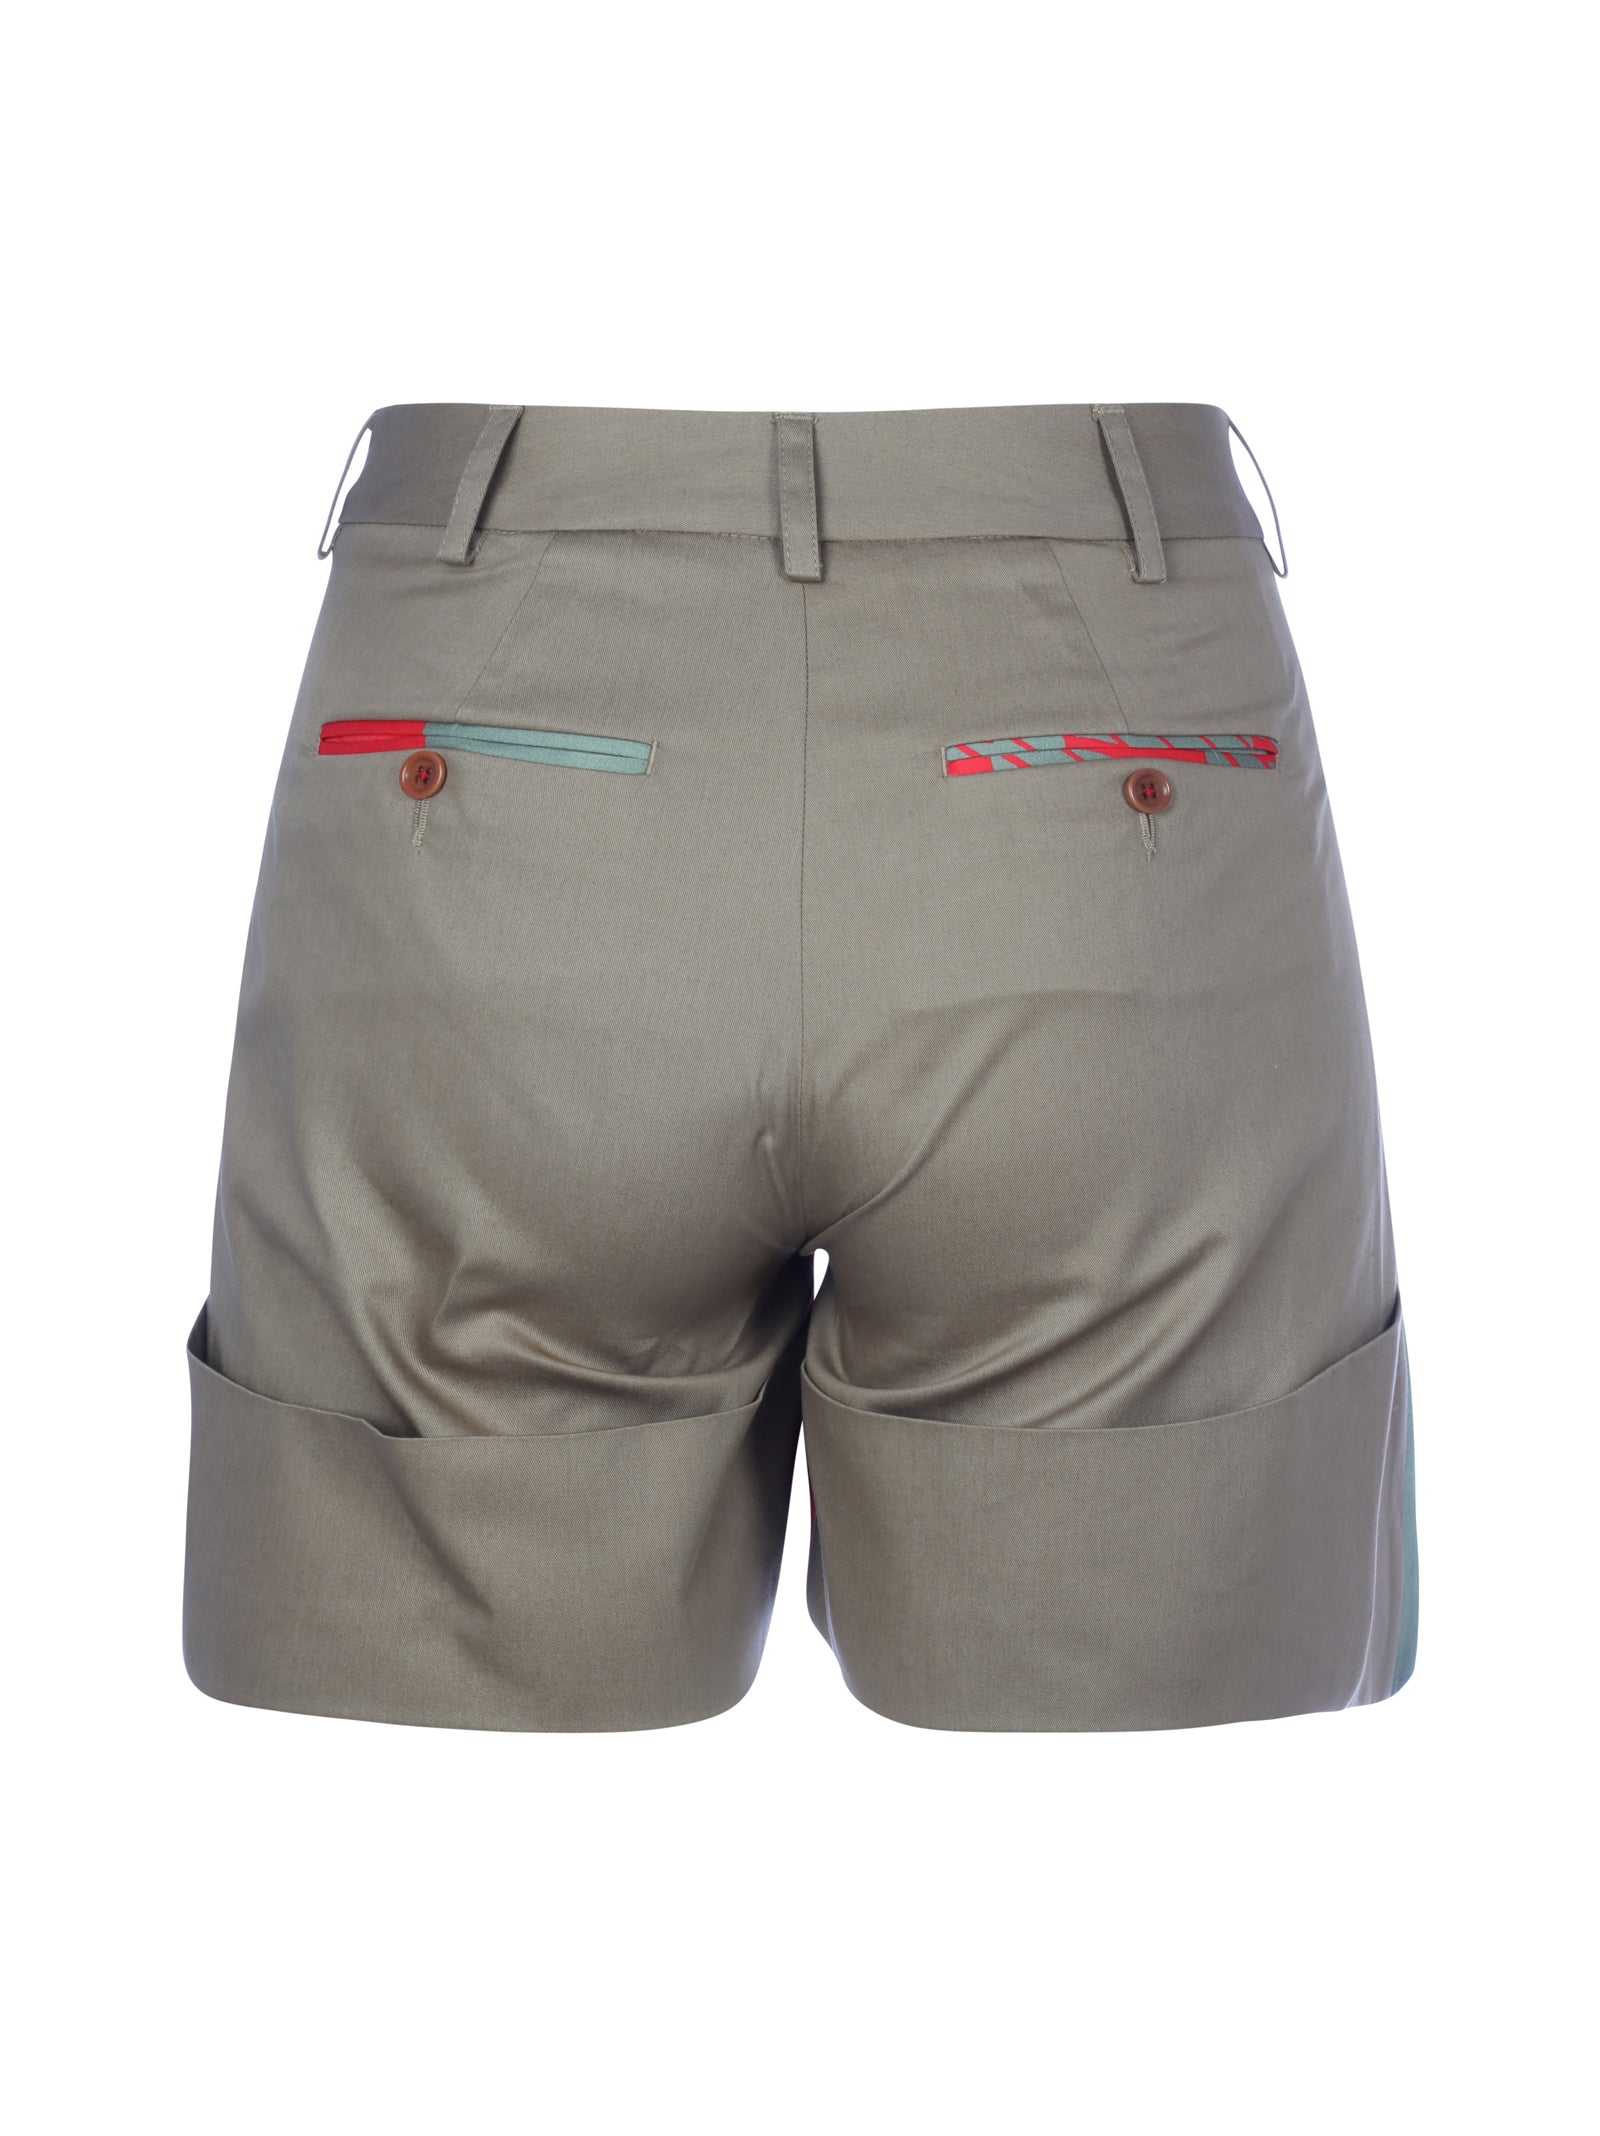 cotton shorts with turn-ups